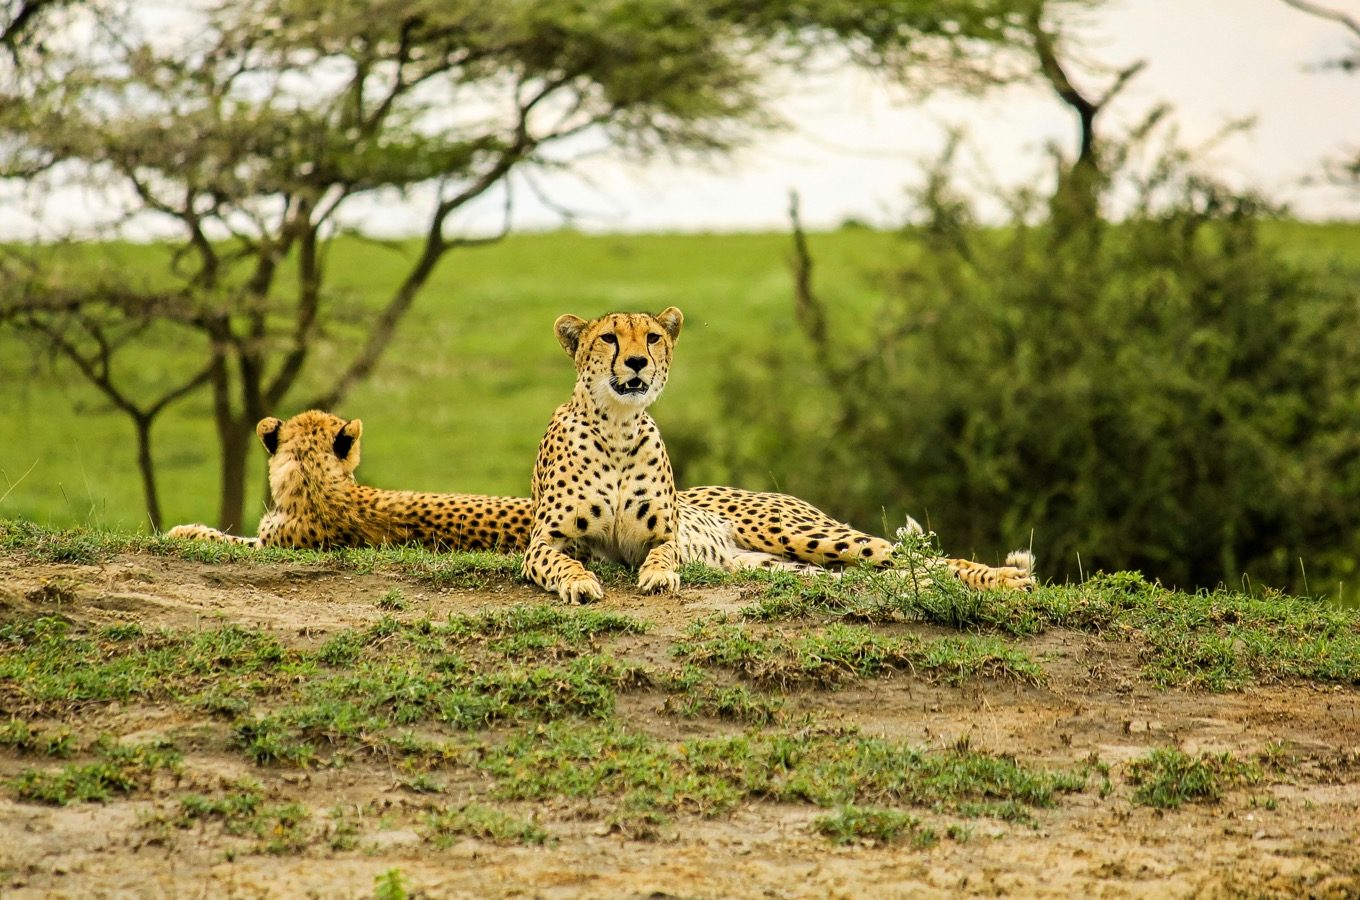 Liegende Geparden im Serengeti Nationalpark, Tansania